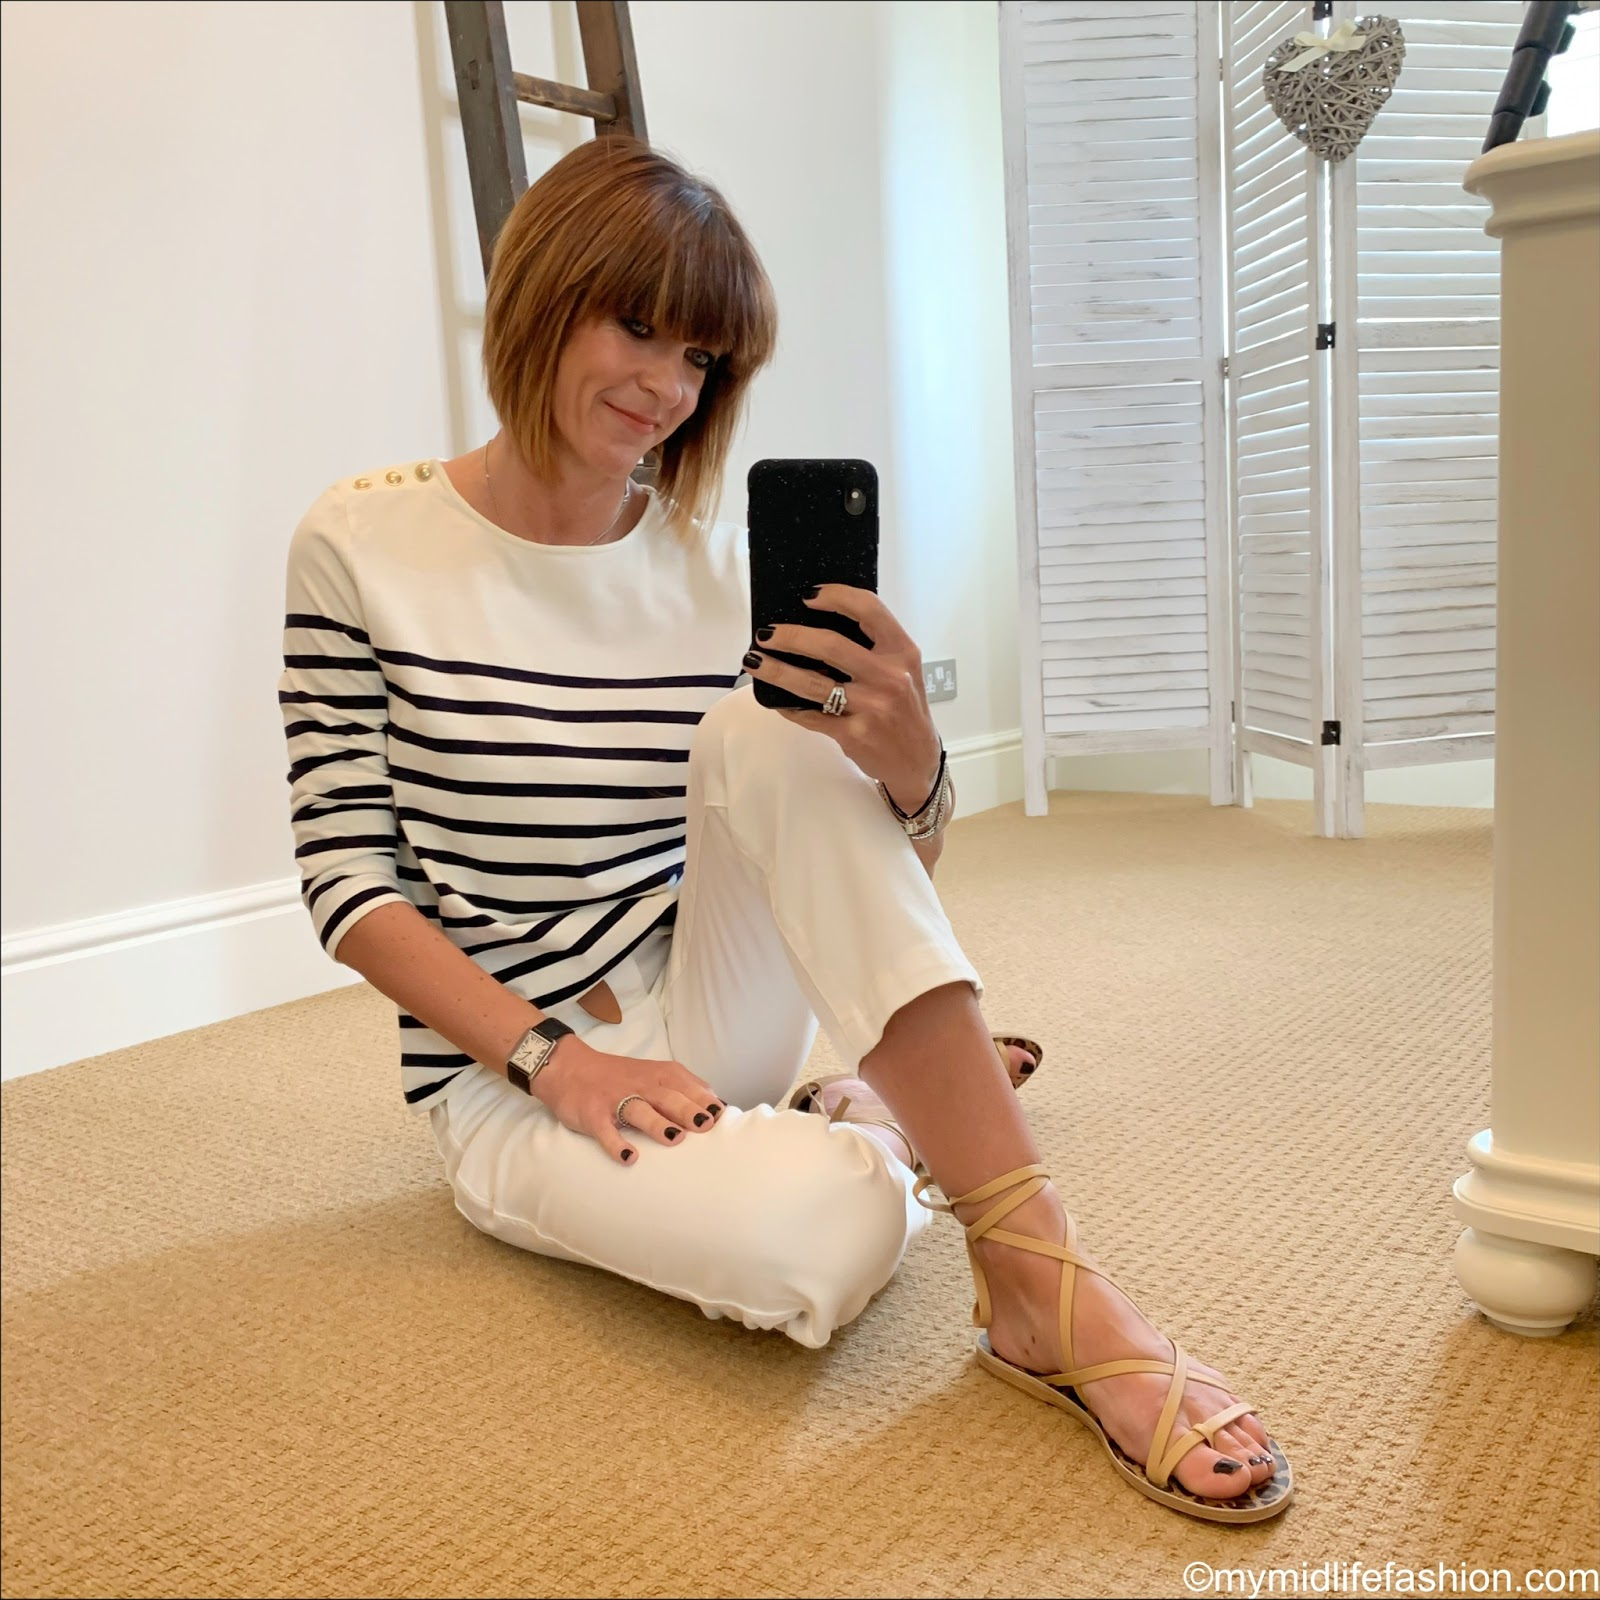 my midlife fashion, sezane loic striped jersey, Isabel Marant lecce leather belt, Ancient Greek sandals morif leather sandals, j crew straight leg crop jean in garment dyed cotton